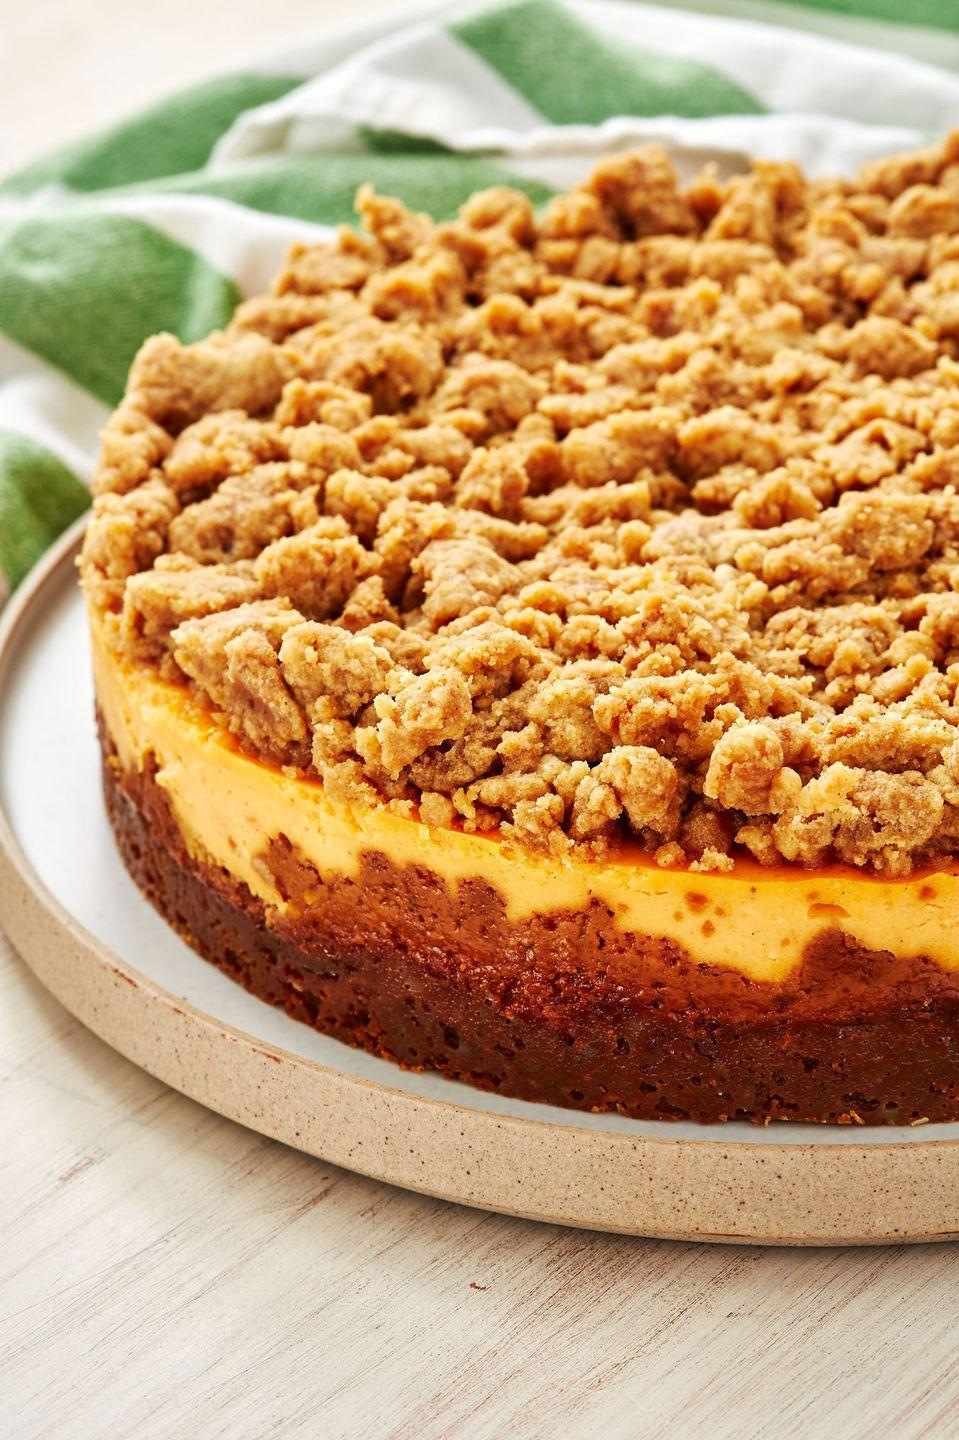 """<p>Who says a casserole is the only way to enjoy sweet potatoes this Thanksgiving?</p><p>Get the recipe from <a href=""""https://www.delish.com/holiday-recipes/thanksgiving/a29177922/sweet-potato-cheesecake-recipe/"""" rel=""""nofollow noopener"""" target=""""_blank"""" data-ylk=""""slk:Delish"""" class=""""link rapid-noclick-resp"""">Delish</a>.</p>"""